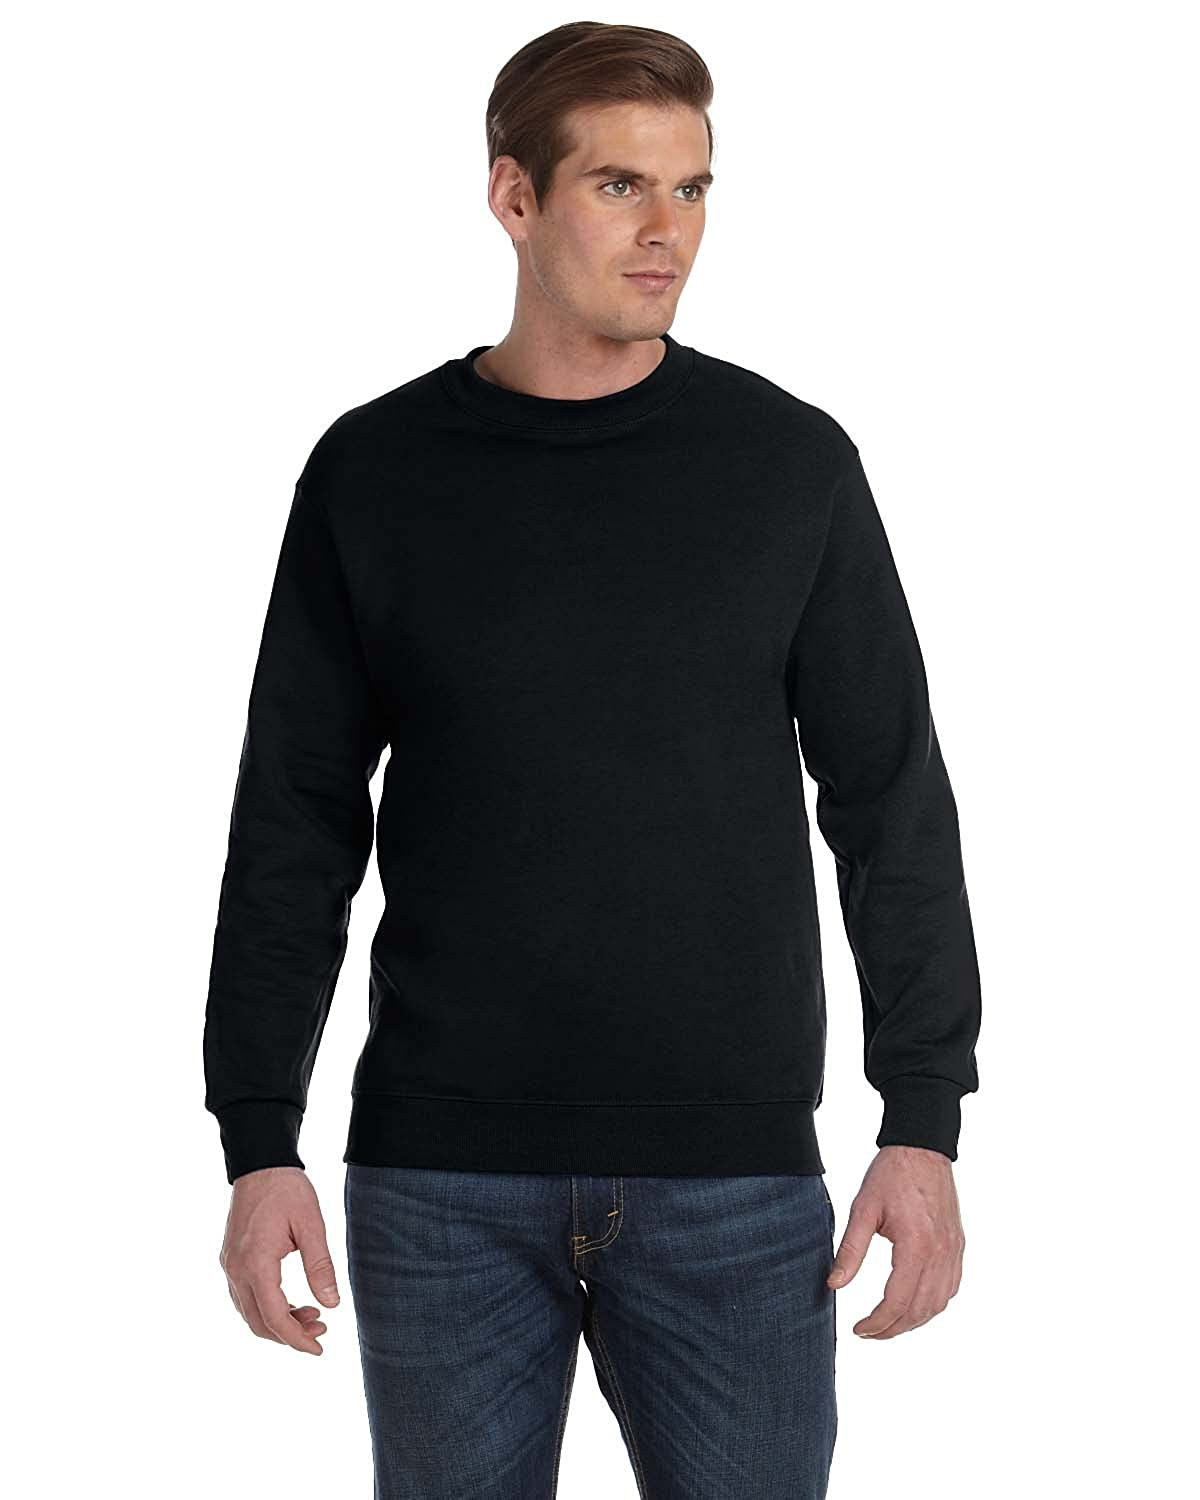 DryBlend? 50//50 Fleece Crew Gildan Mens 9.3 oz -Black -L-12PK G120